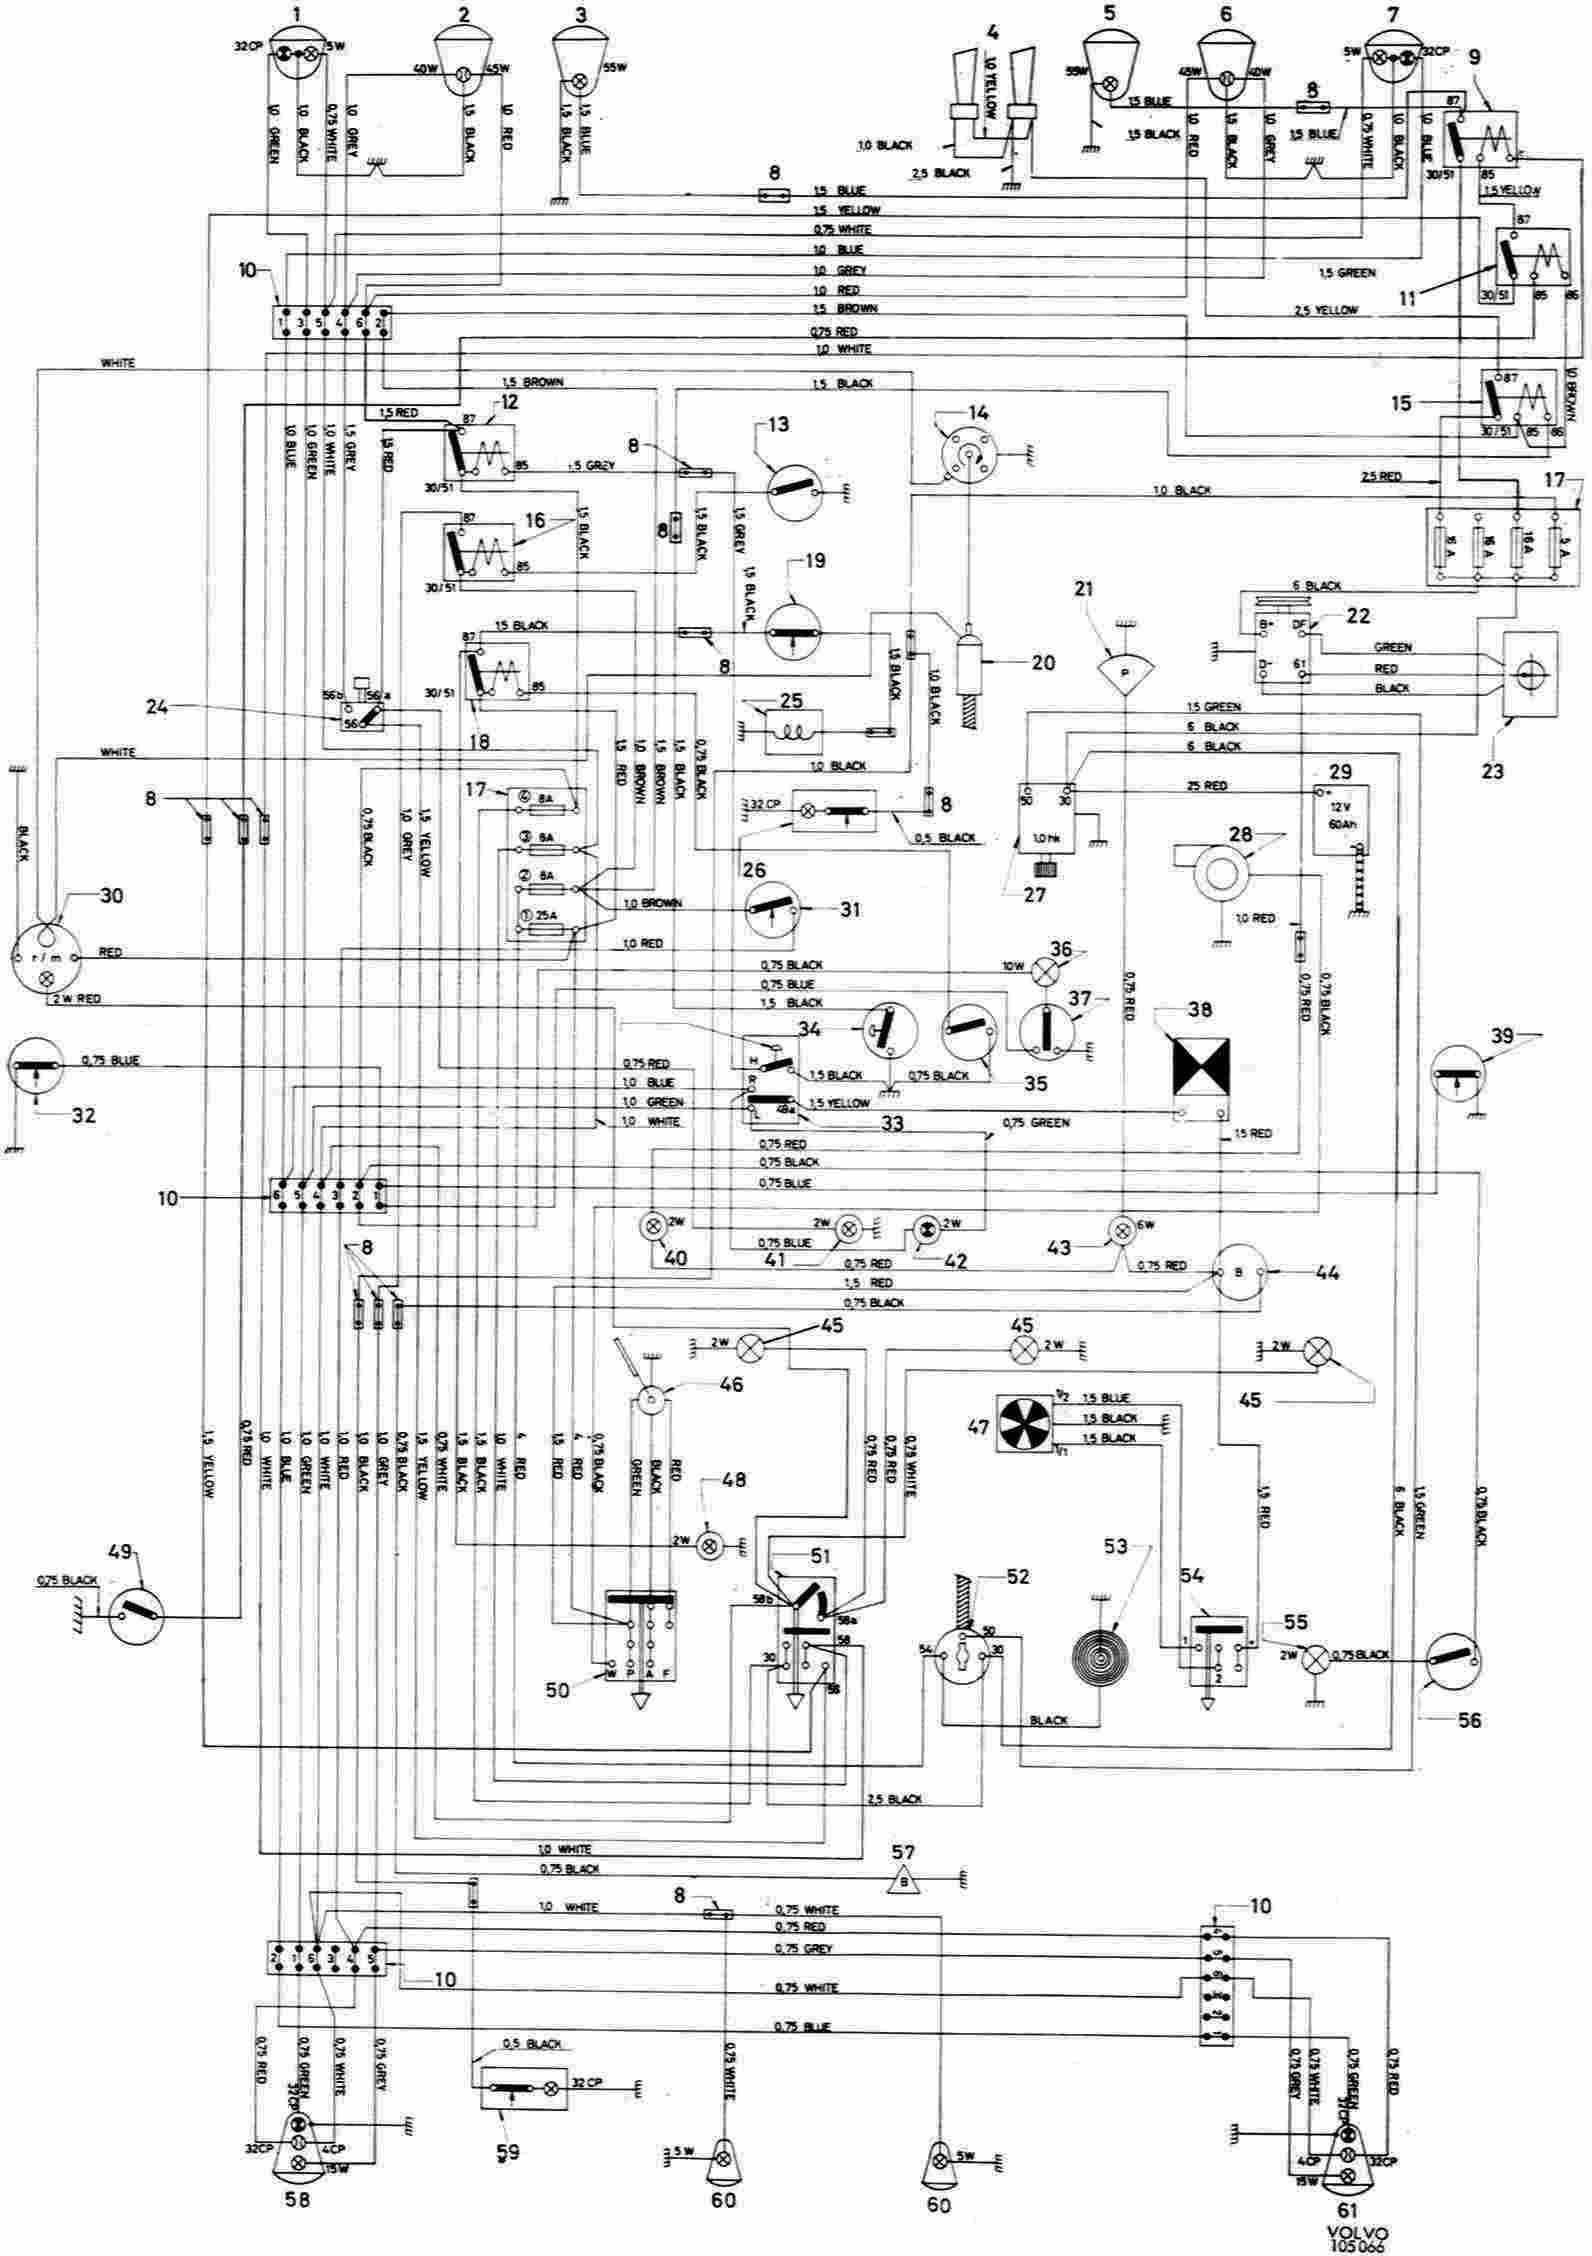 93 VOLVO 940 TURBO ENGINE DIAGRAM - Auto Electrical Wiring